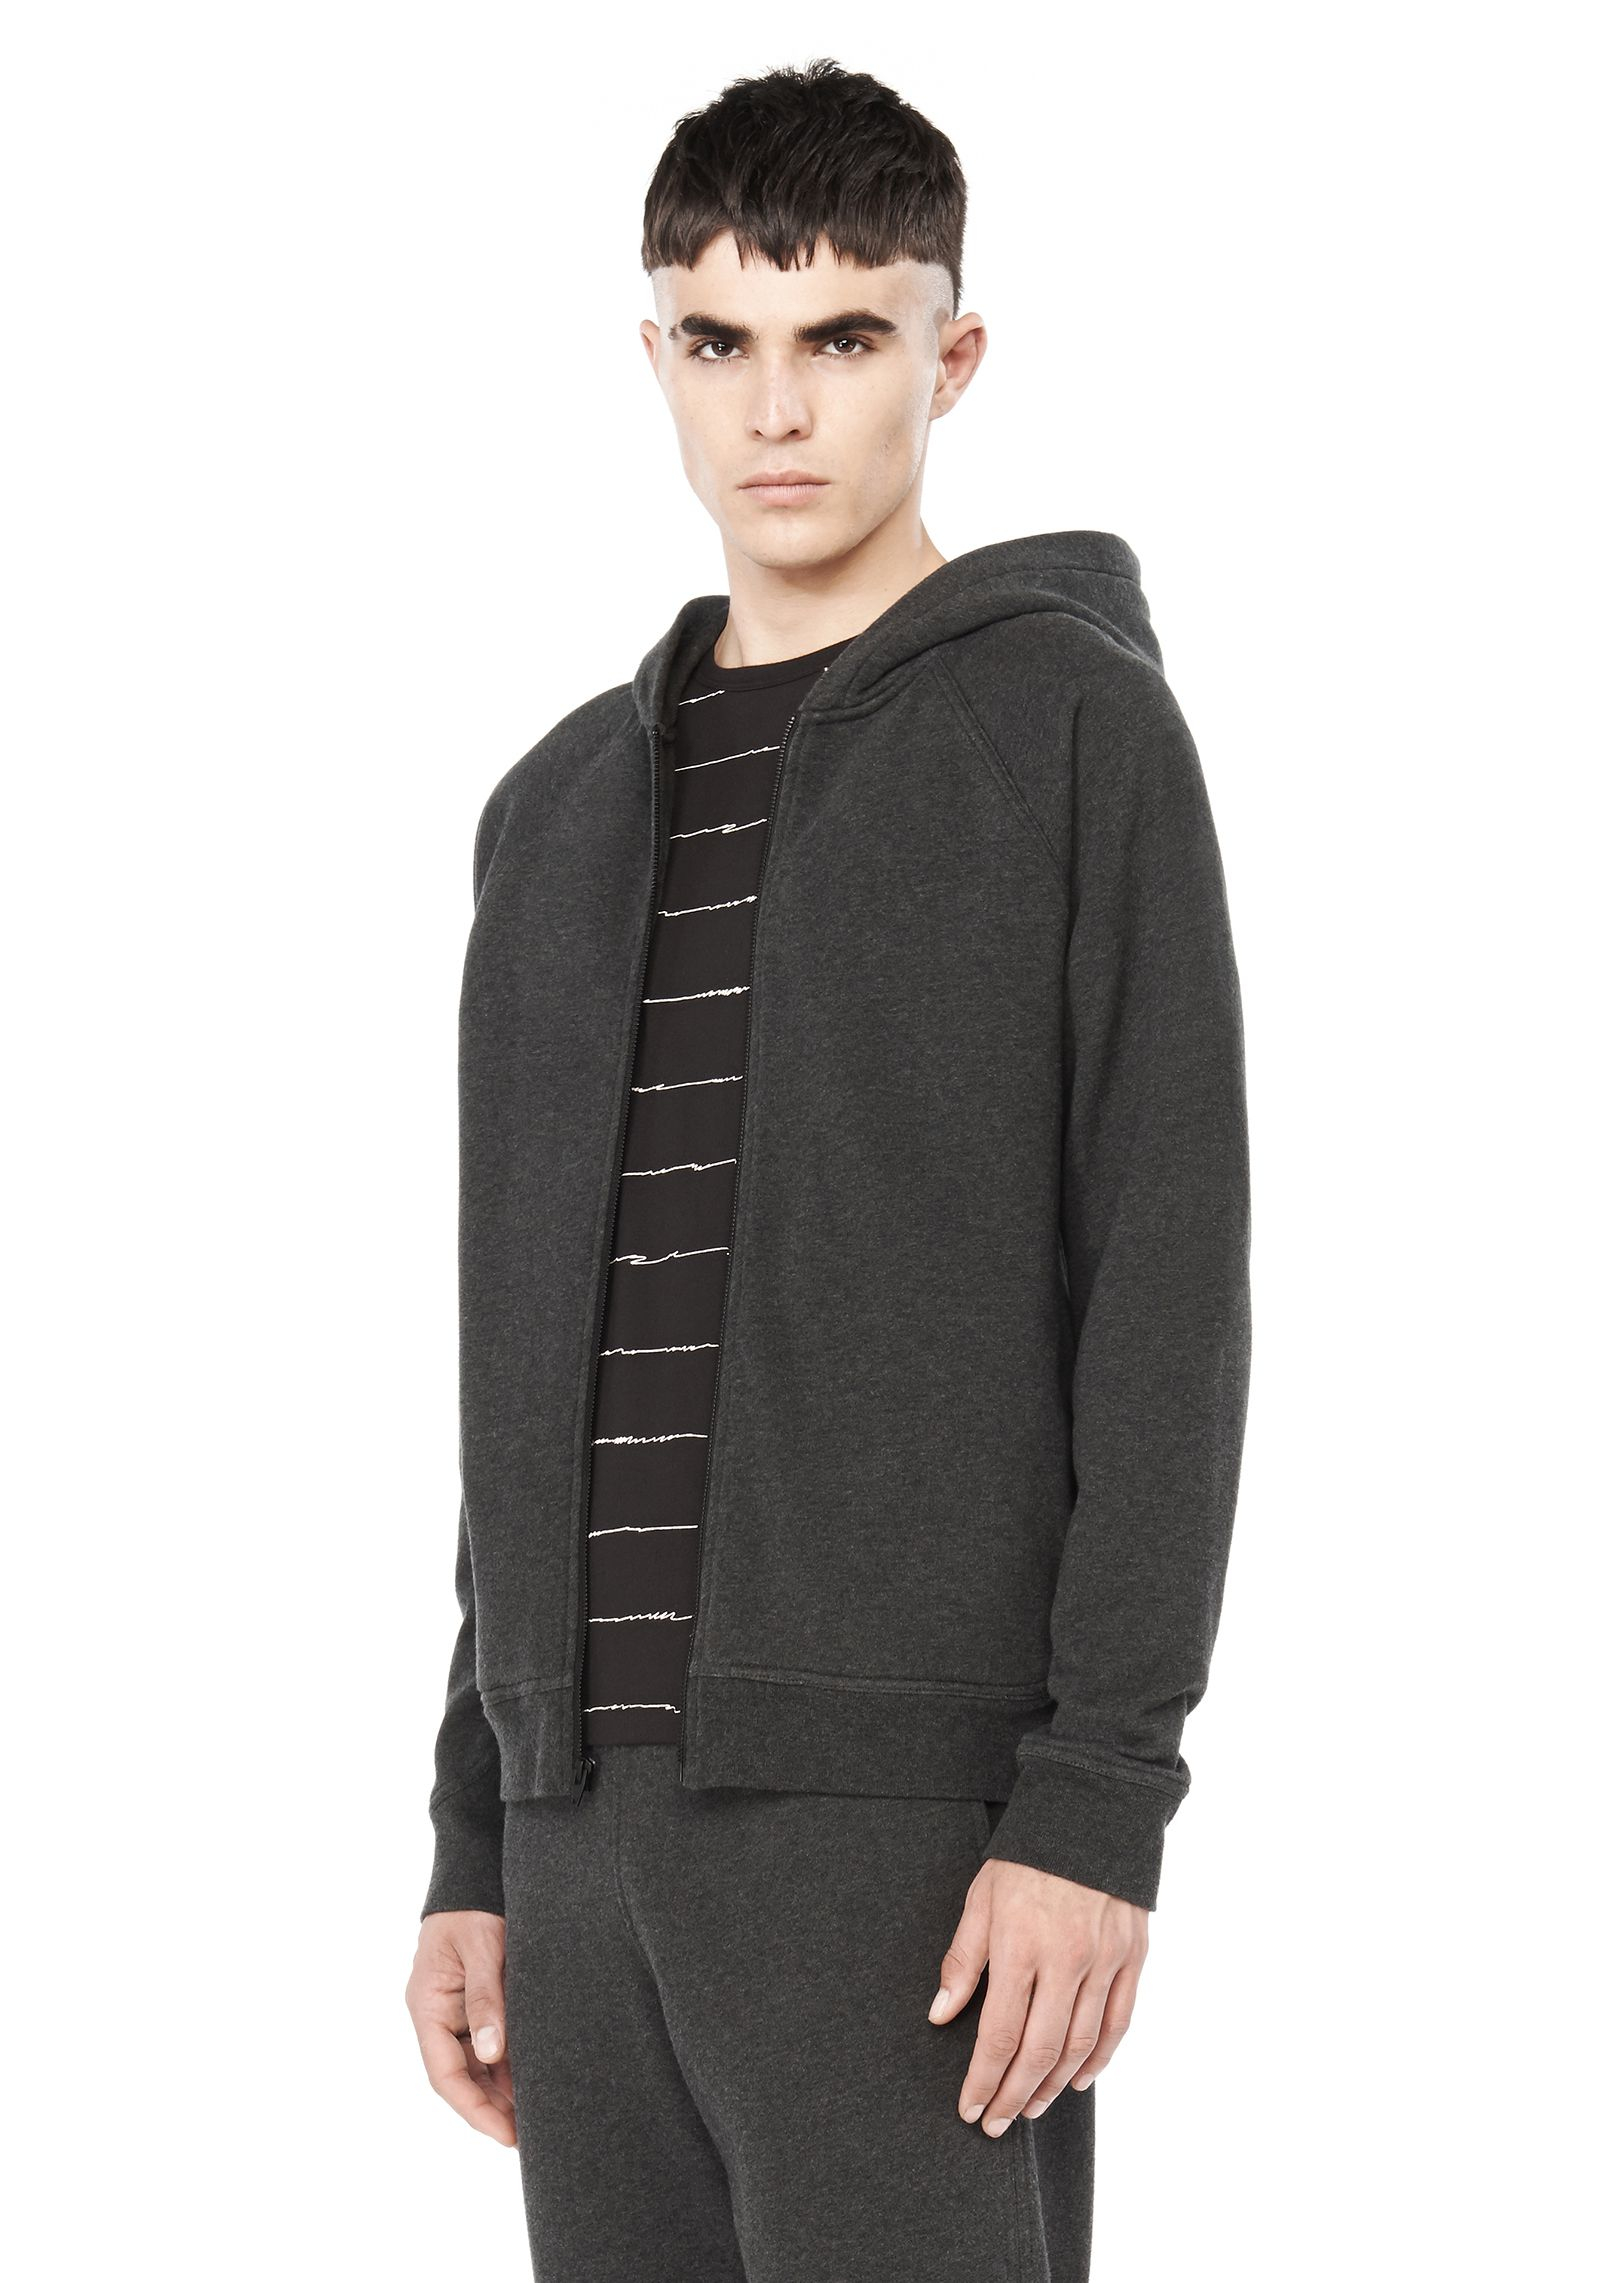 lyst t by alexander wang vintage fleece zip up hoodie in. Black Bedroom Furniture Sets. Home Design Ideas